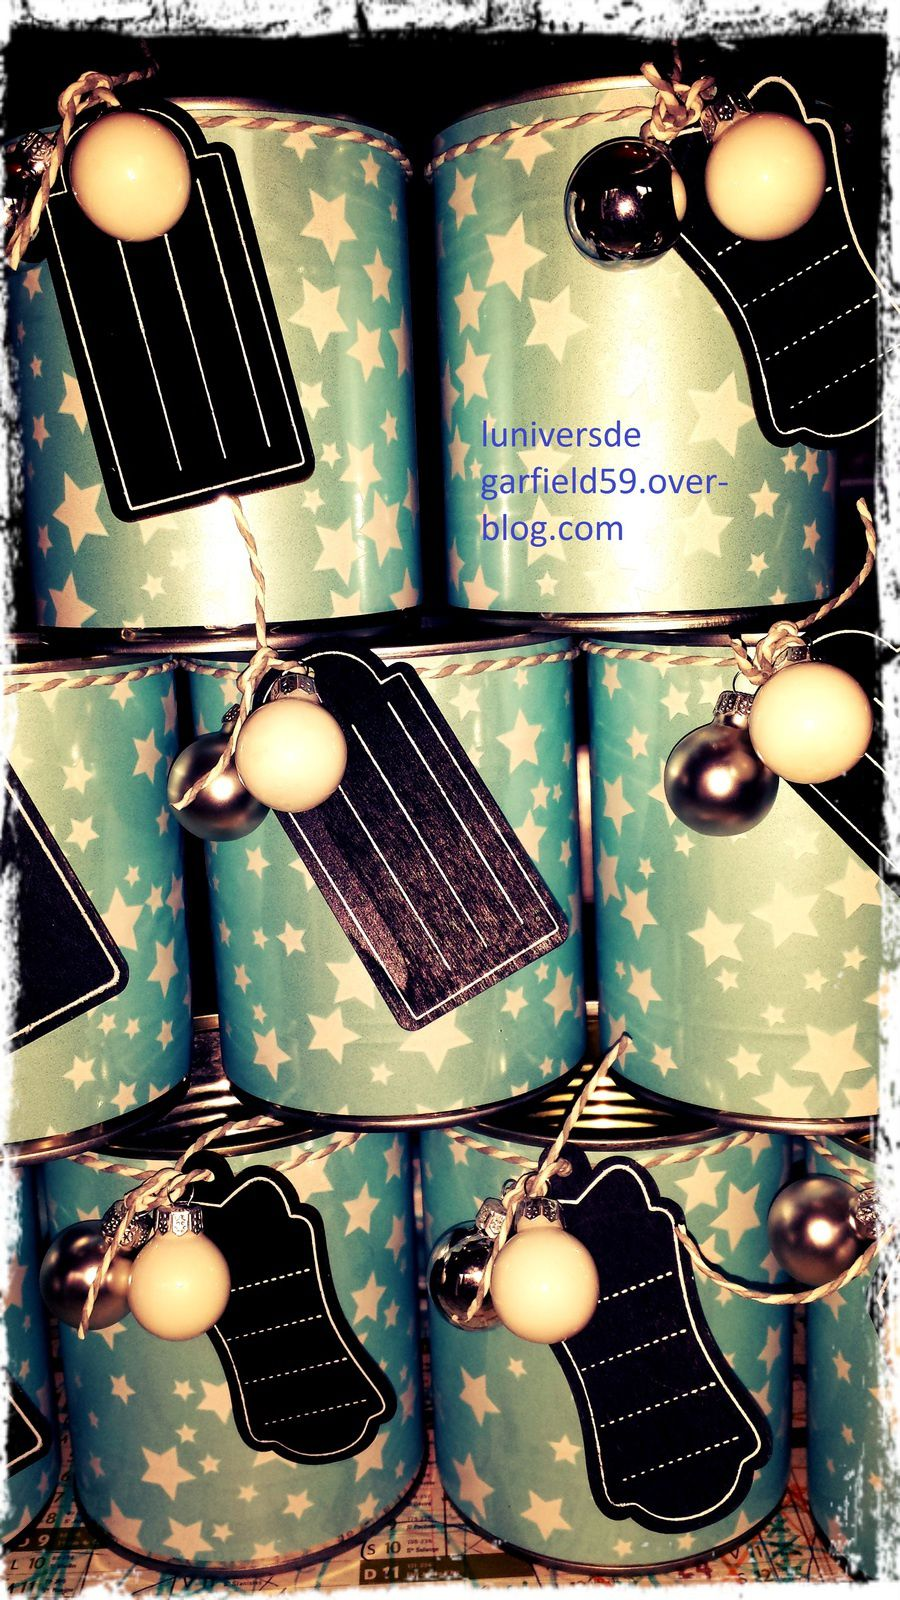 http://luniversdegarfield59.over-blog.com recup recyclage conserve noel calendrier l'avent diy